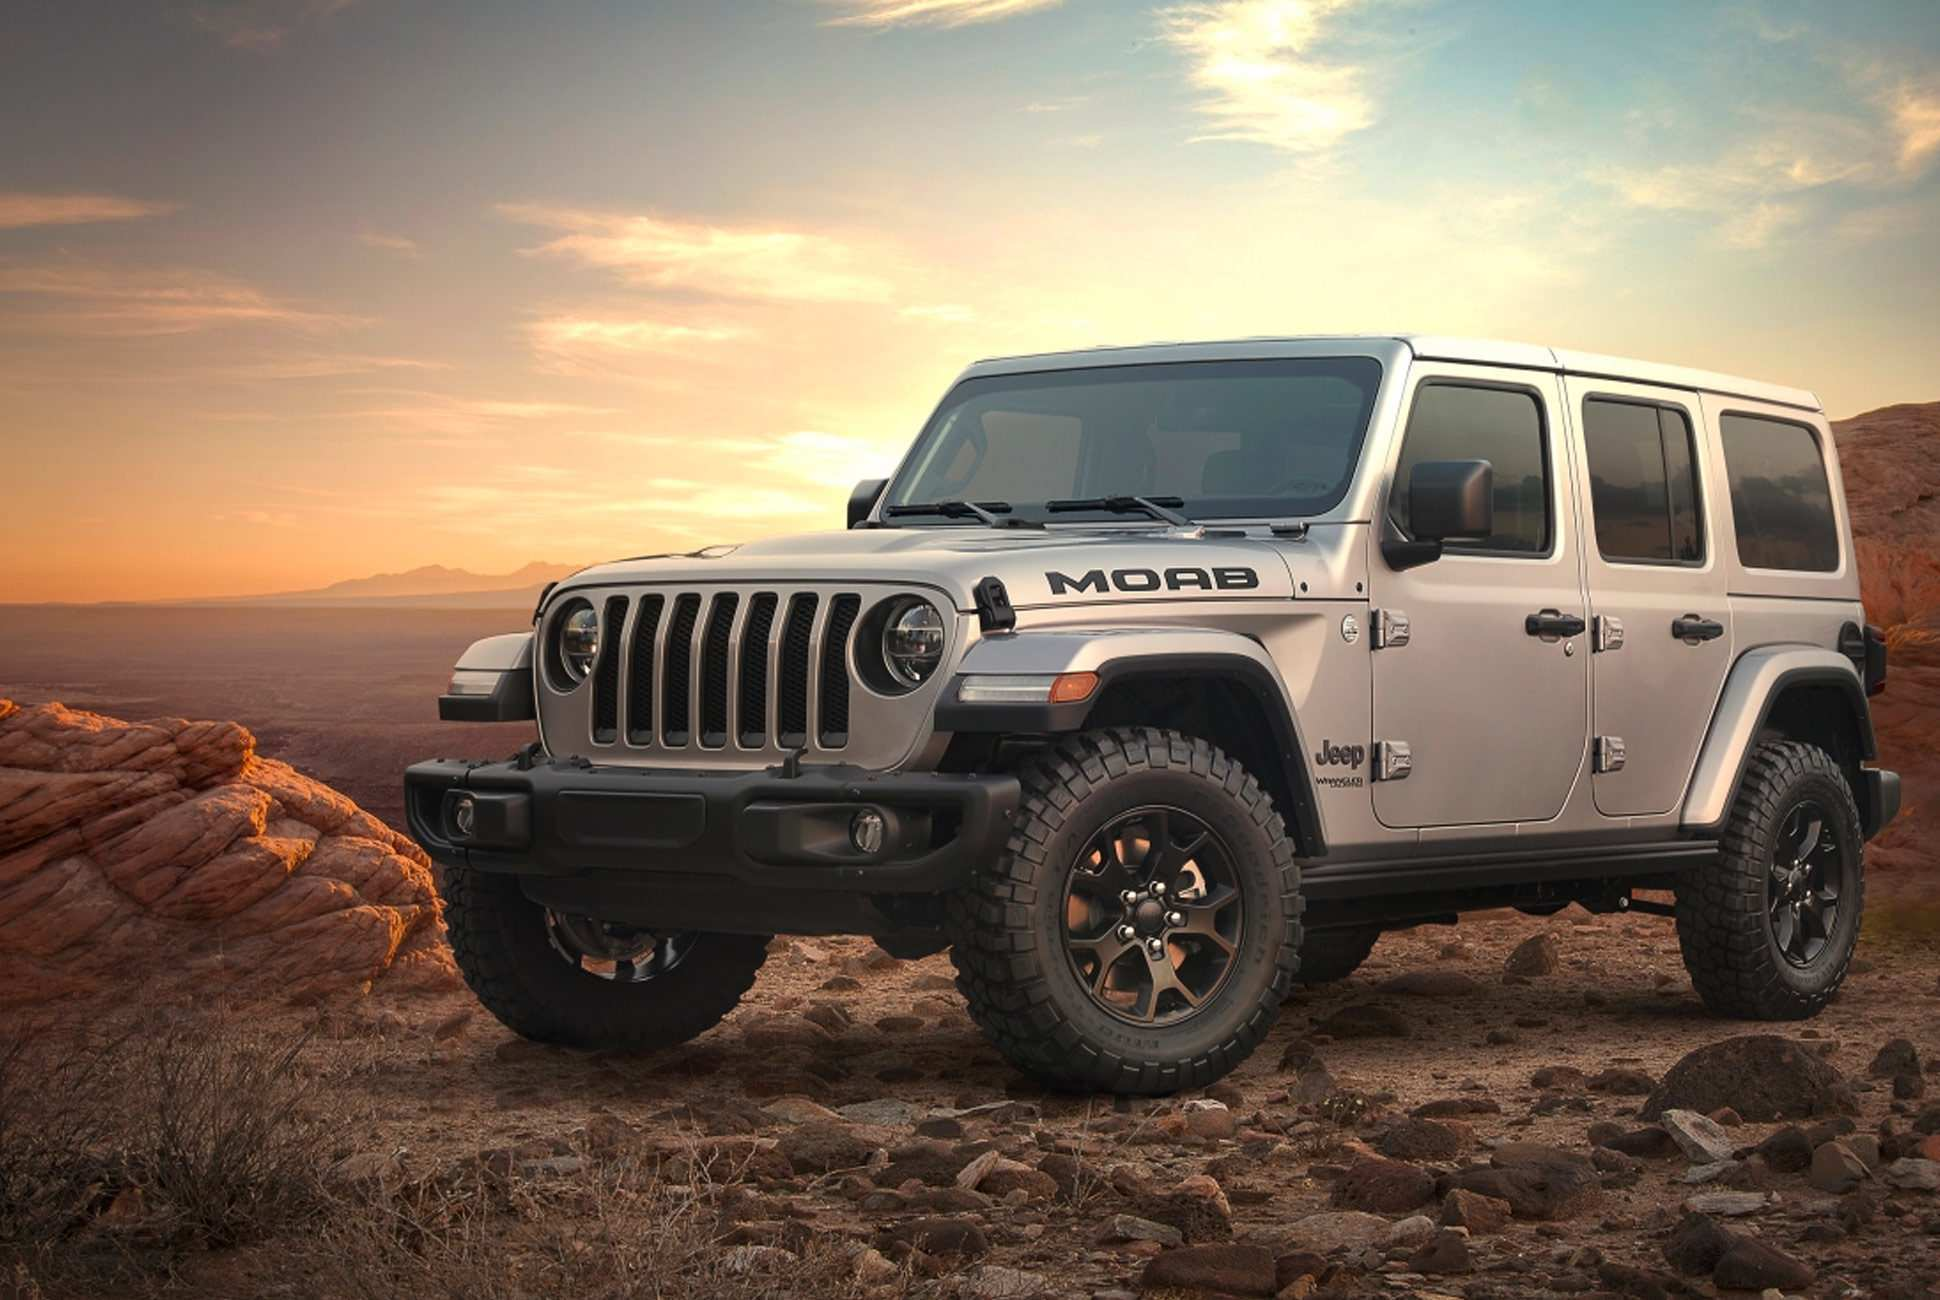 92 Concept of The Jeep Moab Edition 2019 Review And Release Date Pricing with The Jeep Moab Edition 2019 Review And Release Date